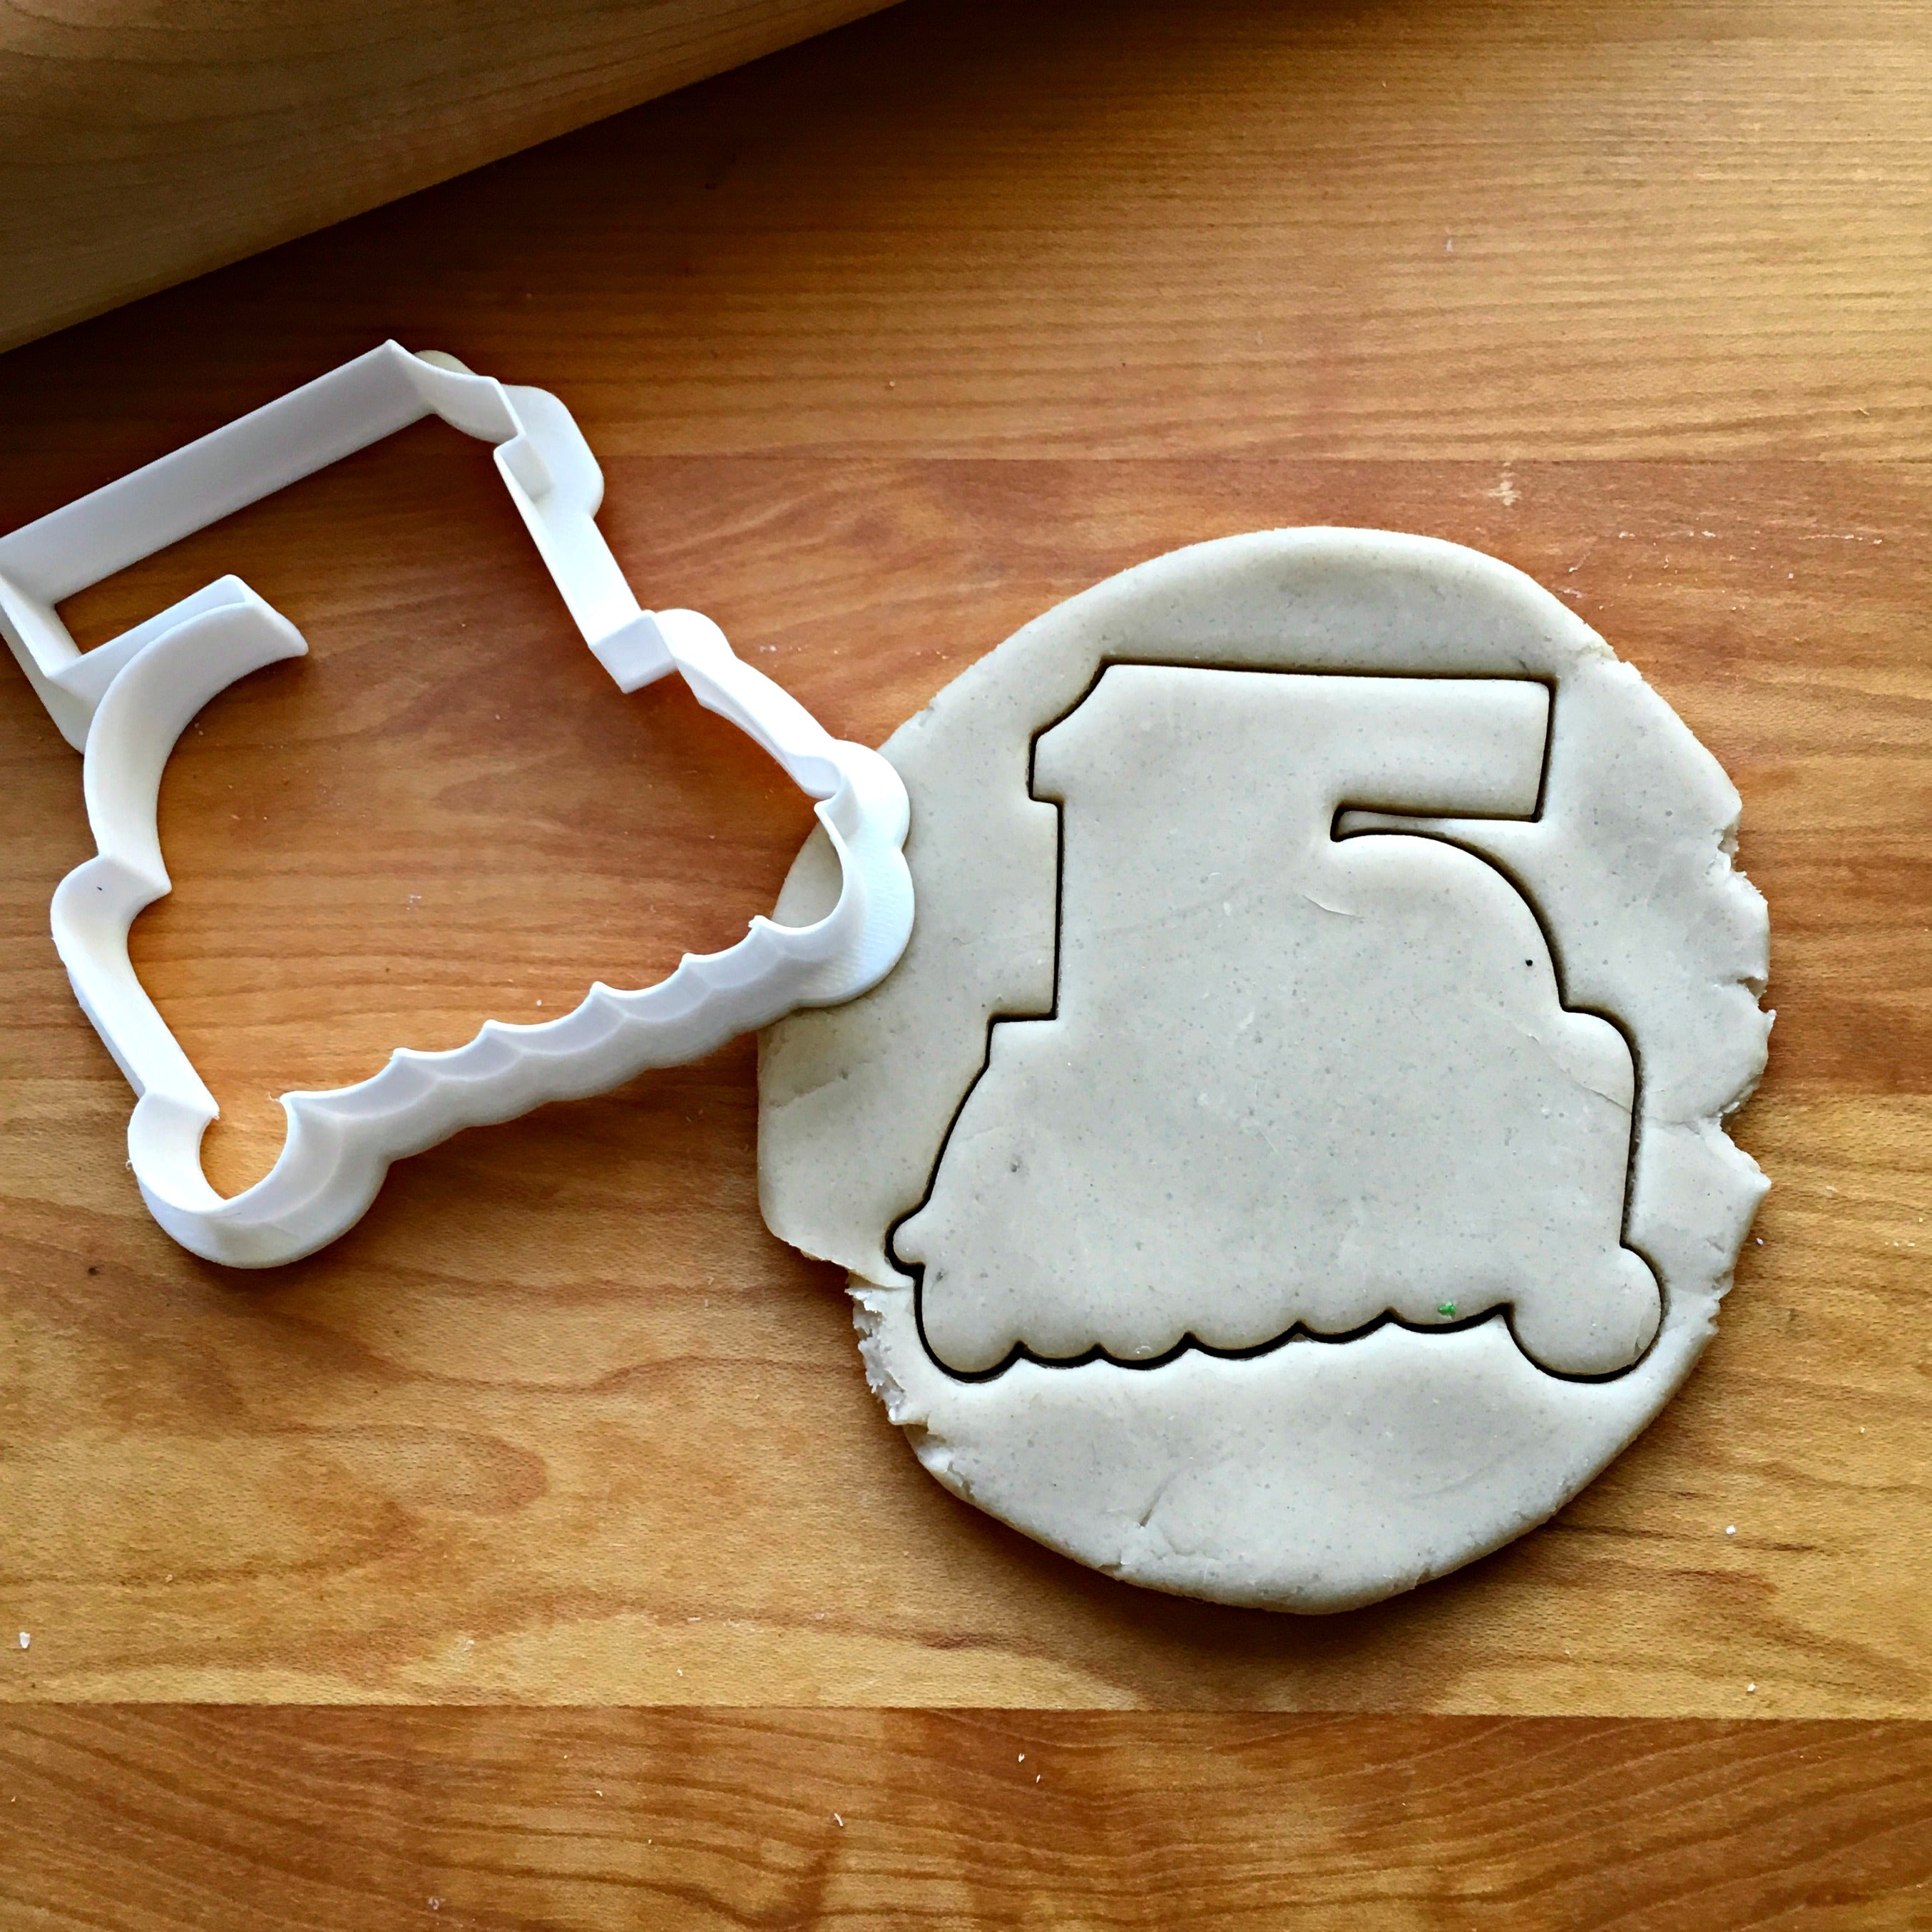 Lettered Number 15 Cookie Cutter/Dishwasher Safe